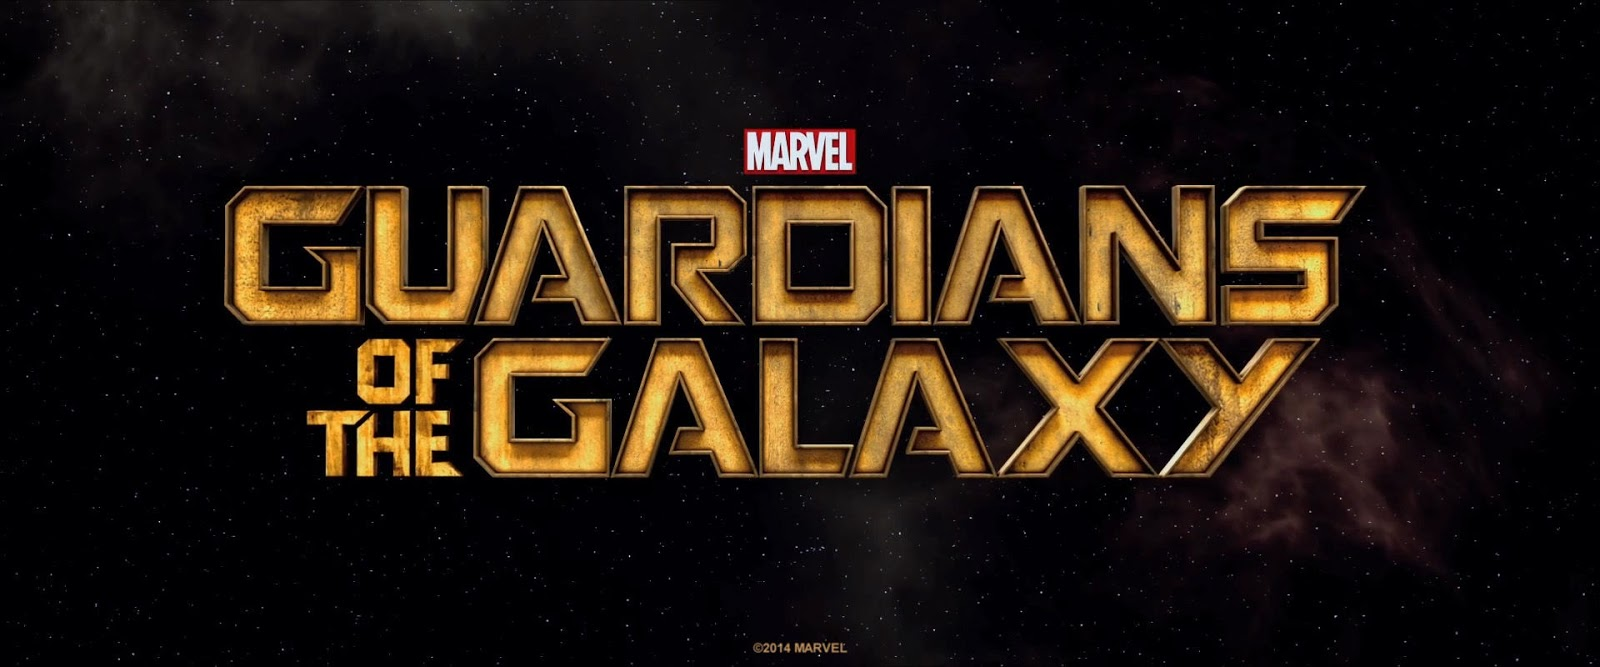 MOVIES: Guardians Of The Galaxy Vol.2 - News Roundup